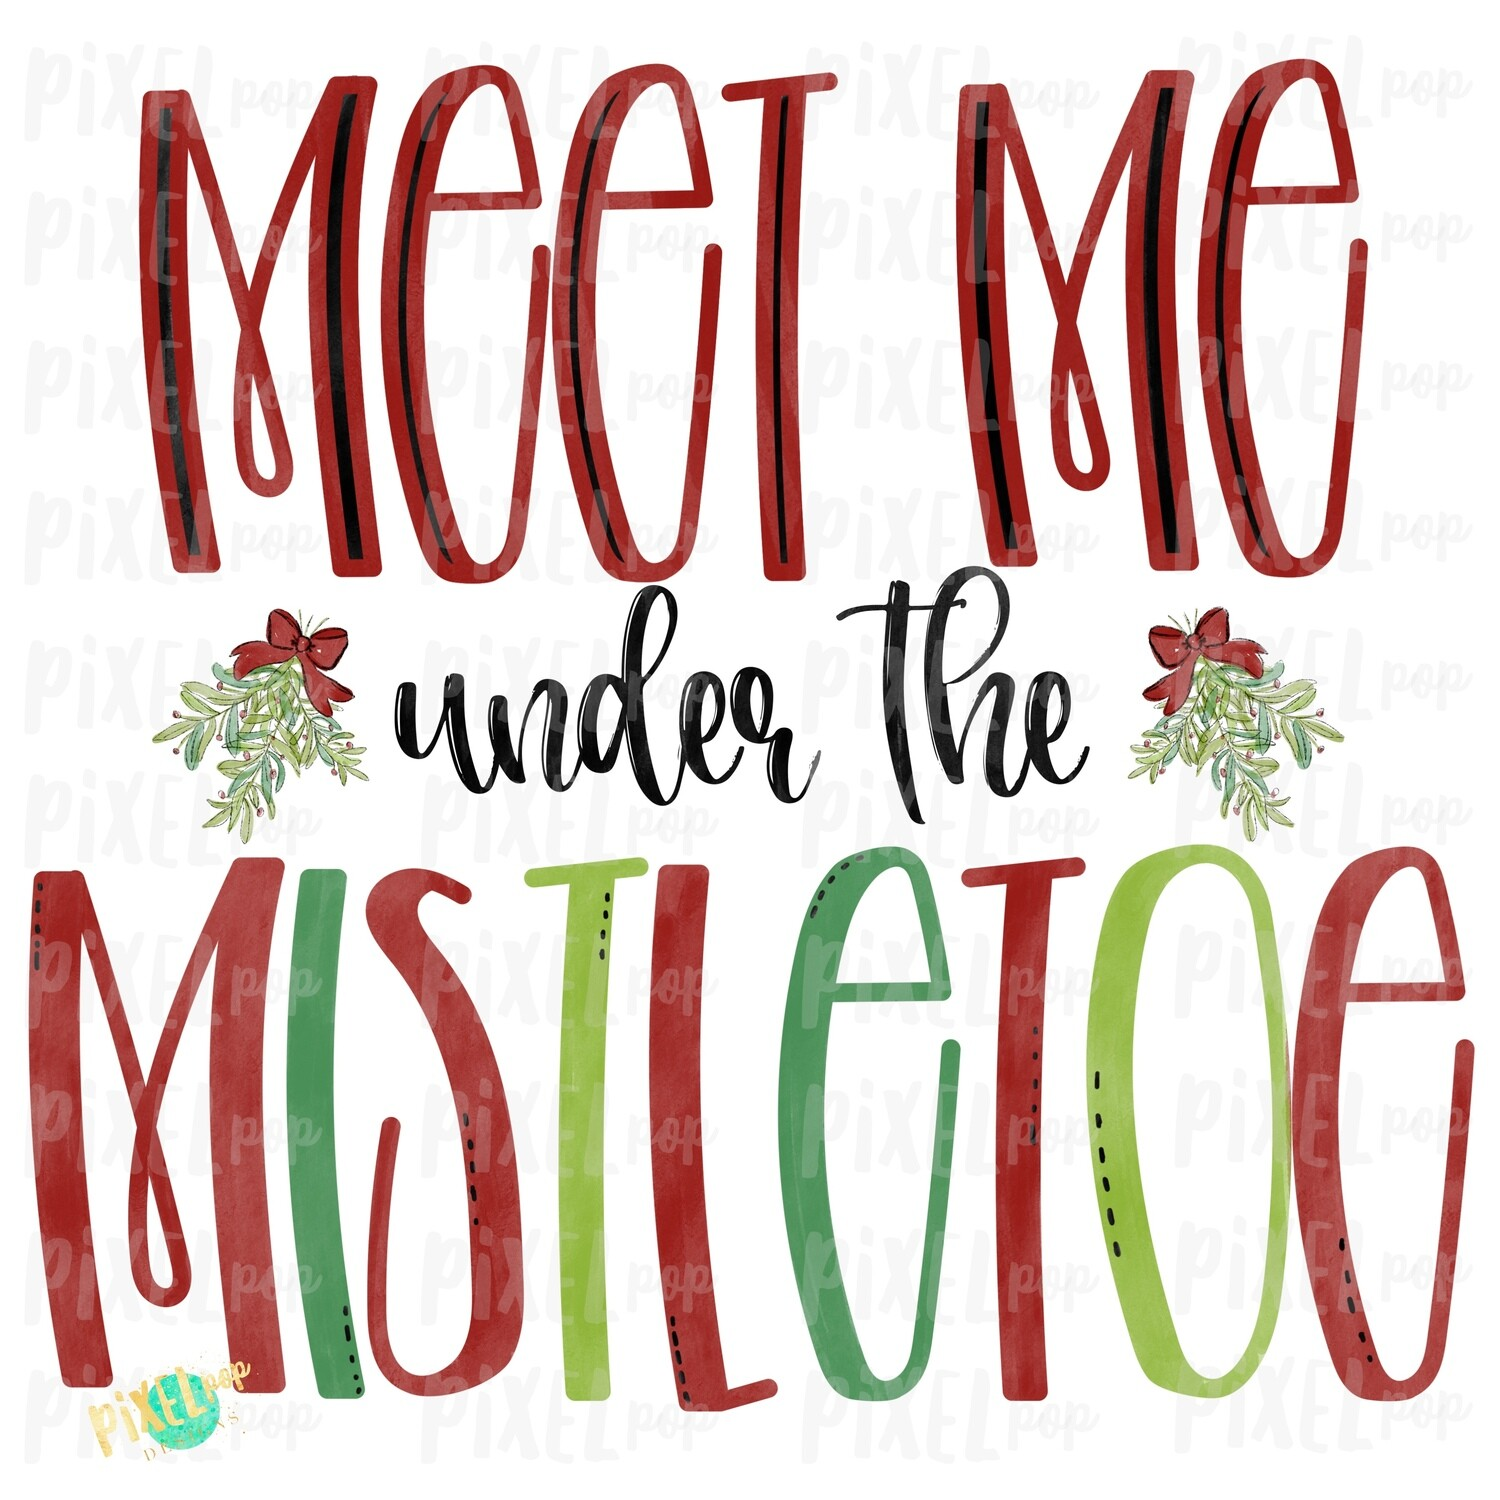 Meet Me Under the Mistletoe Hand Painted Digital Watercolor Sublimation PNG | Clip Art PNG | Digital Art | Printable Artwork | Christmas